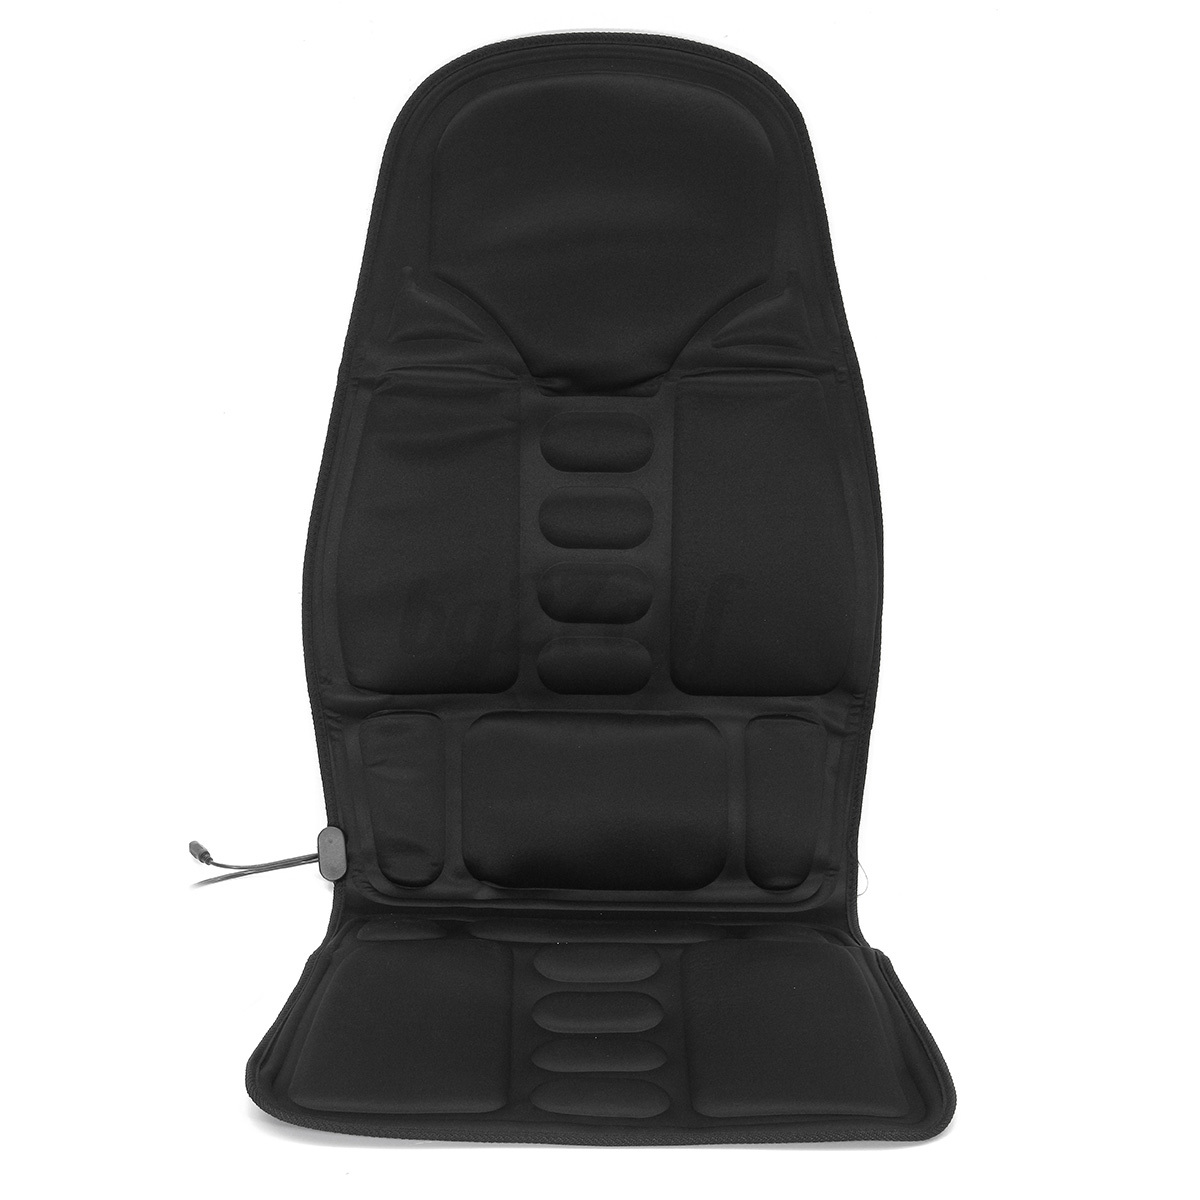 8 mode massage seat cover heated heat back neck cushion car seat chair massager ebay. Black Bedroom Furniture Sets. Home Design Ideas